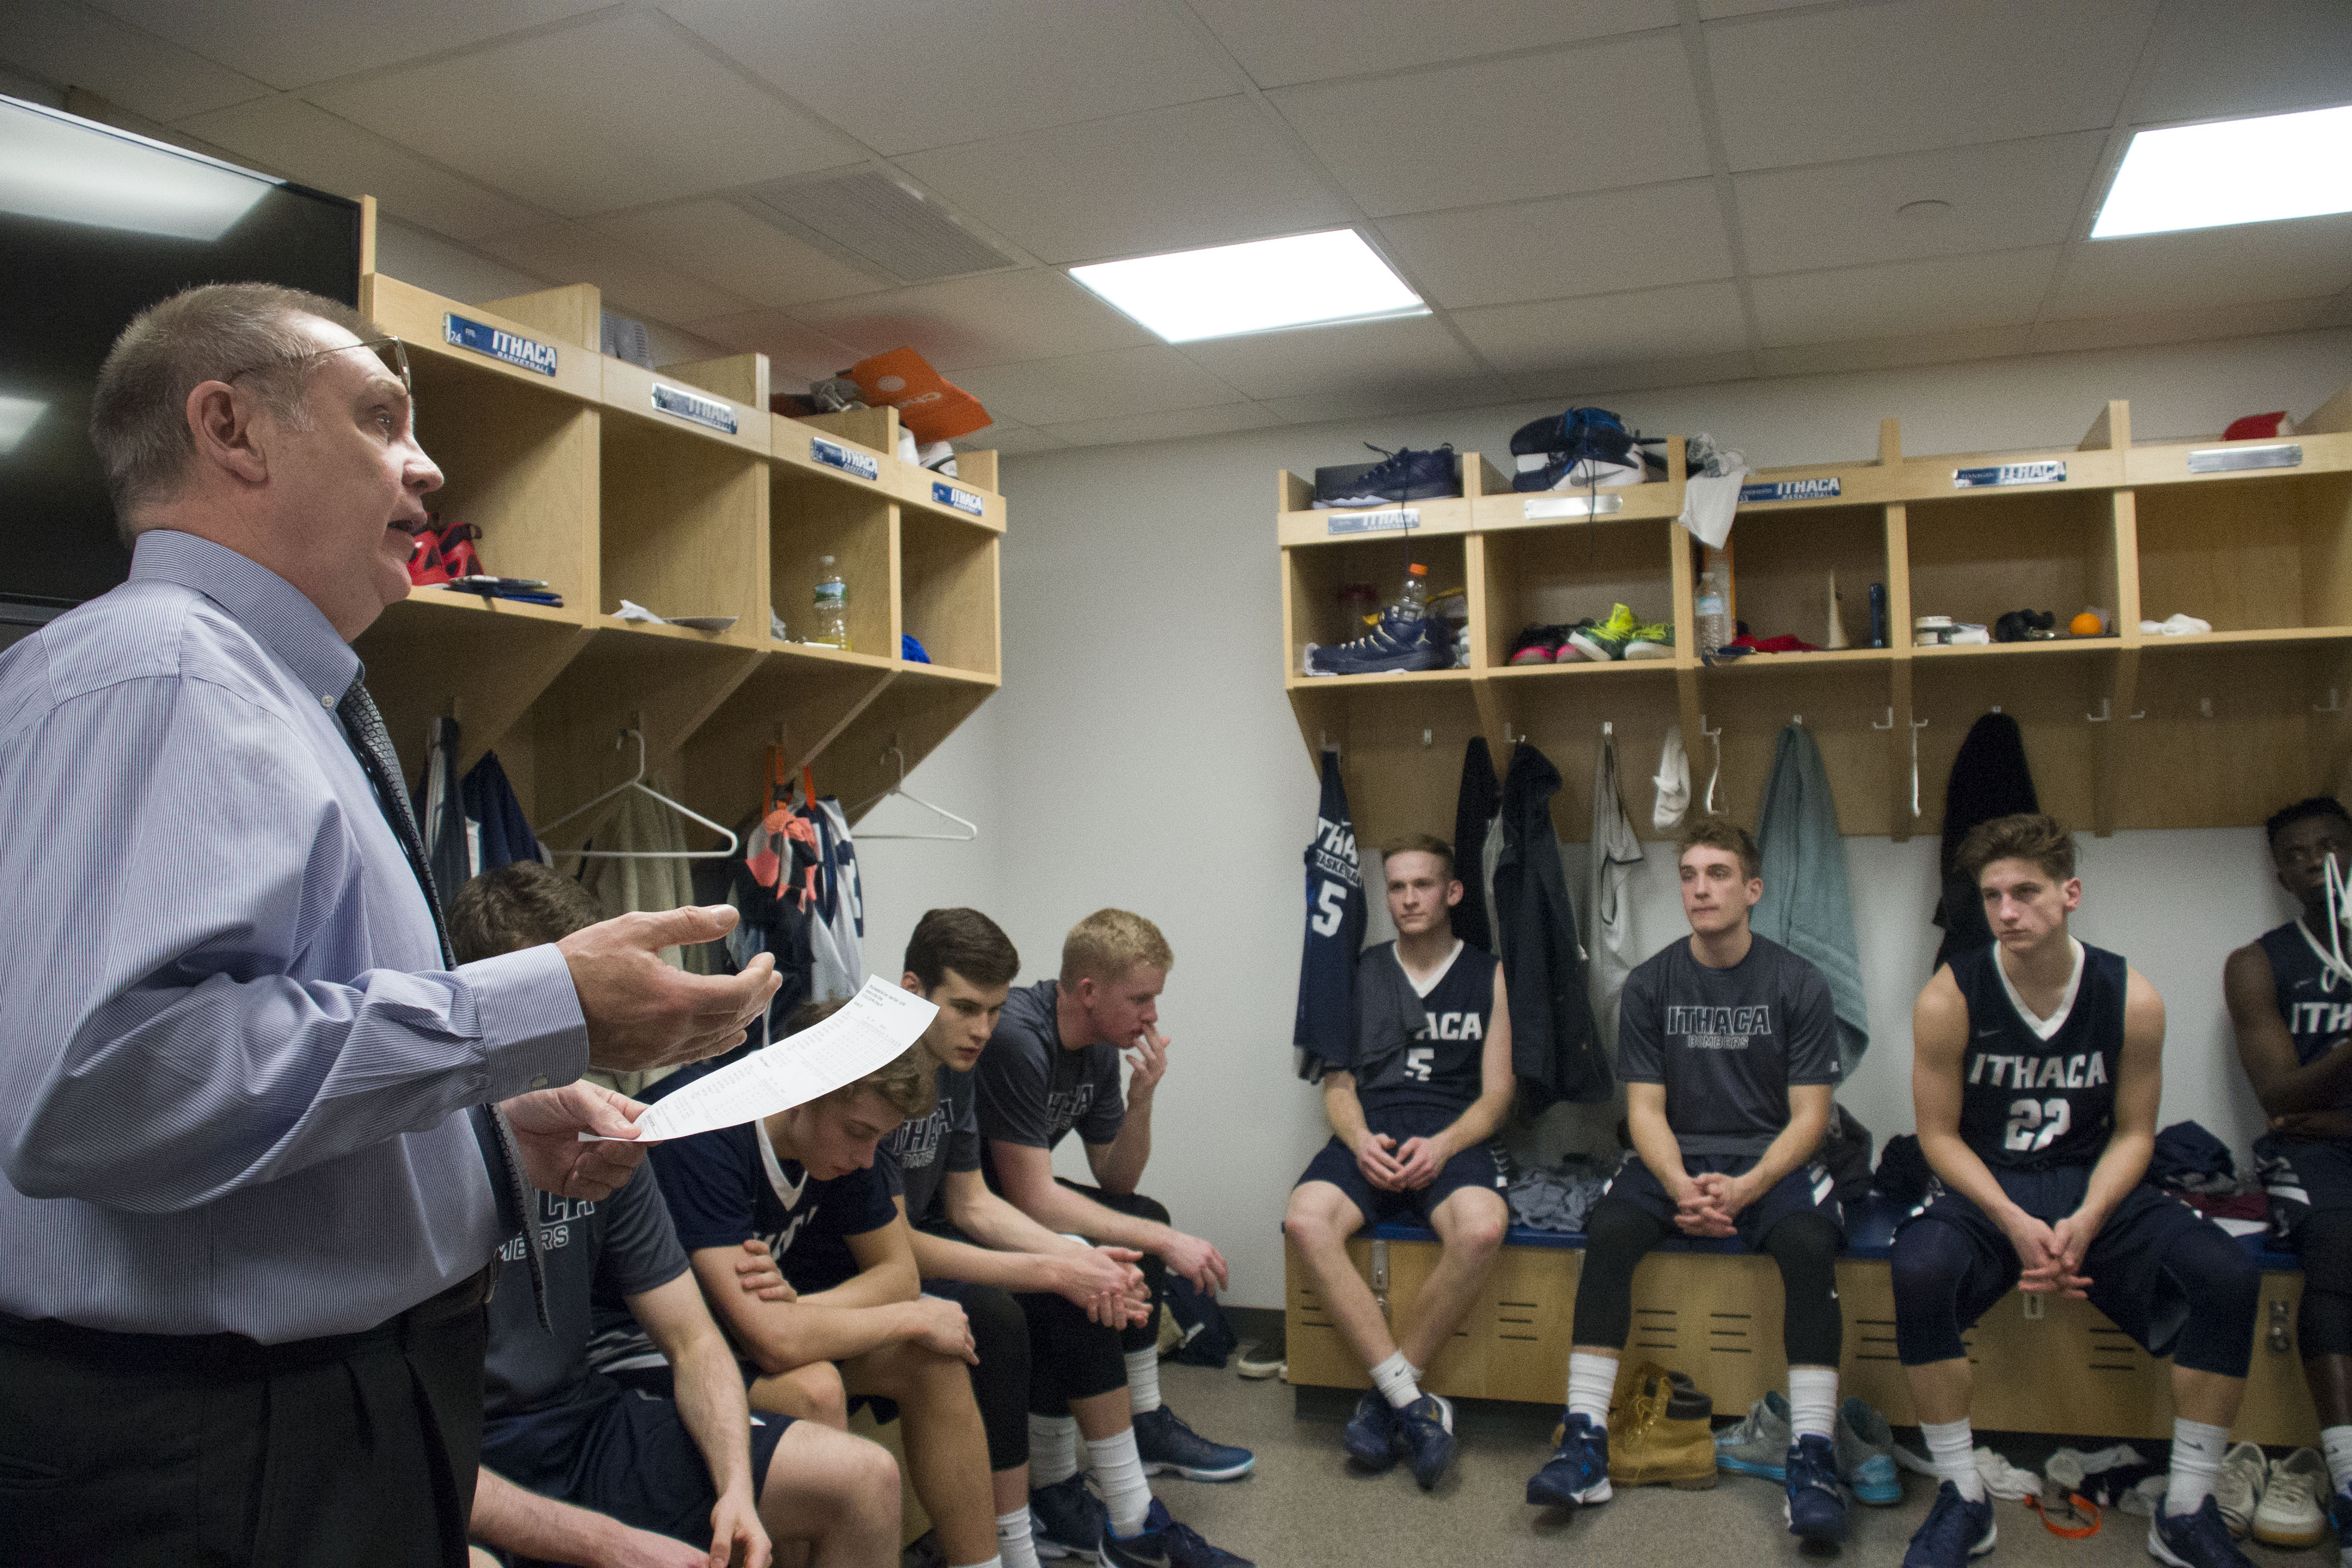 Mullins addresses the team in the locker room before the game.